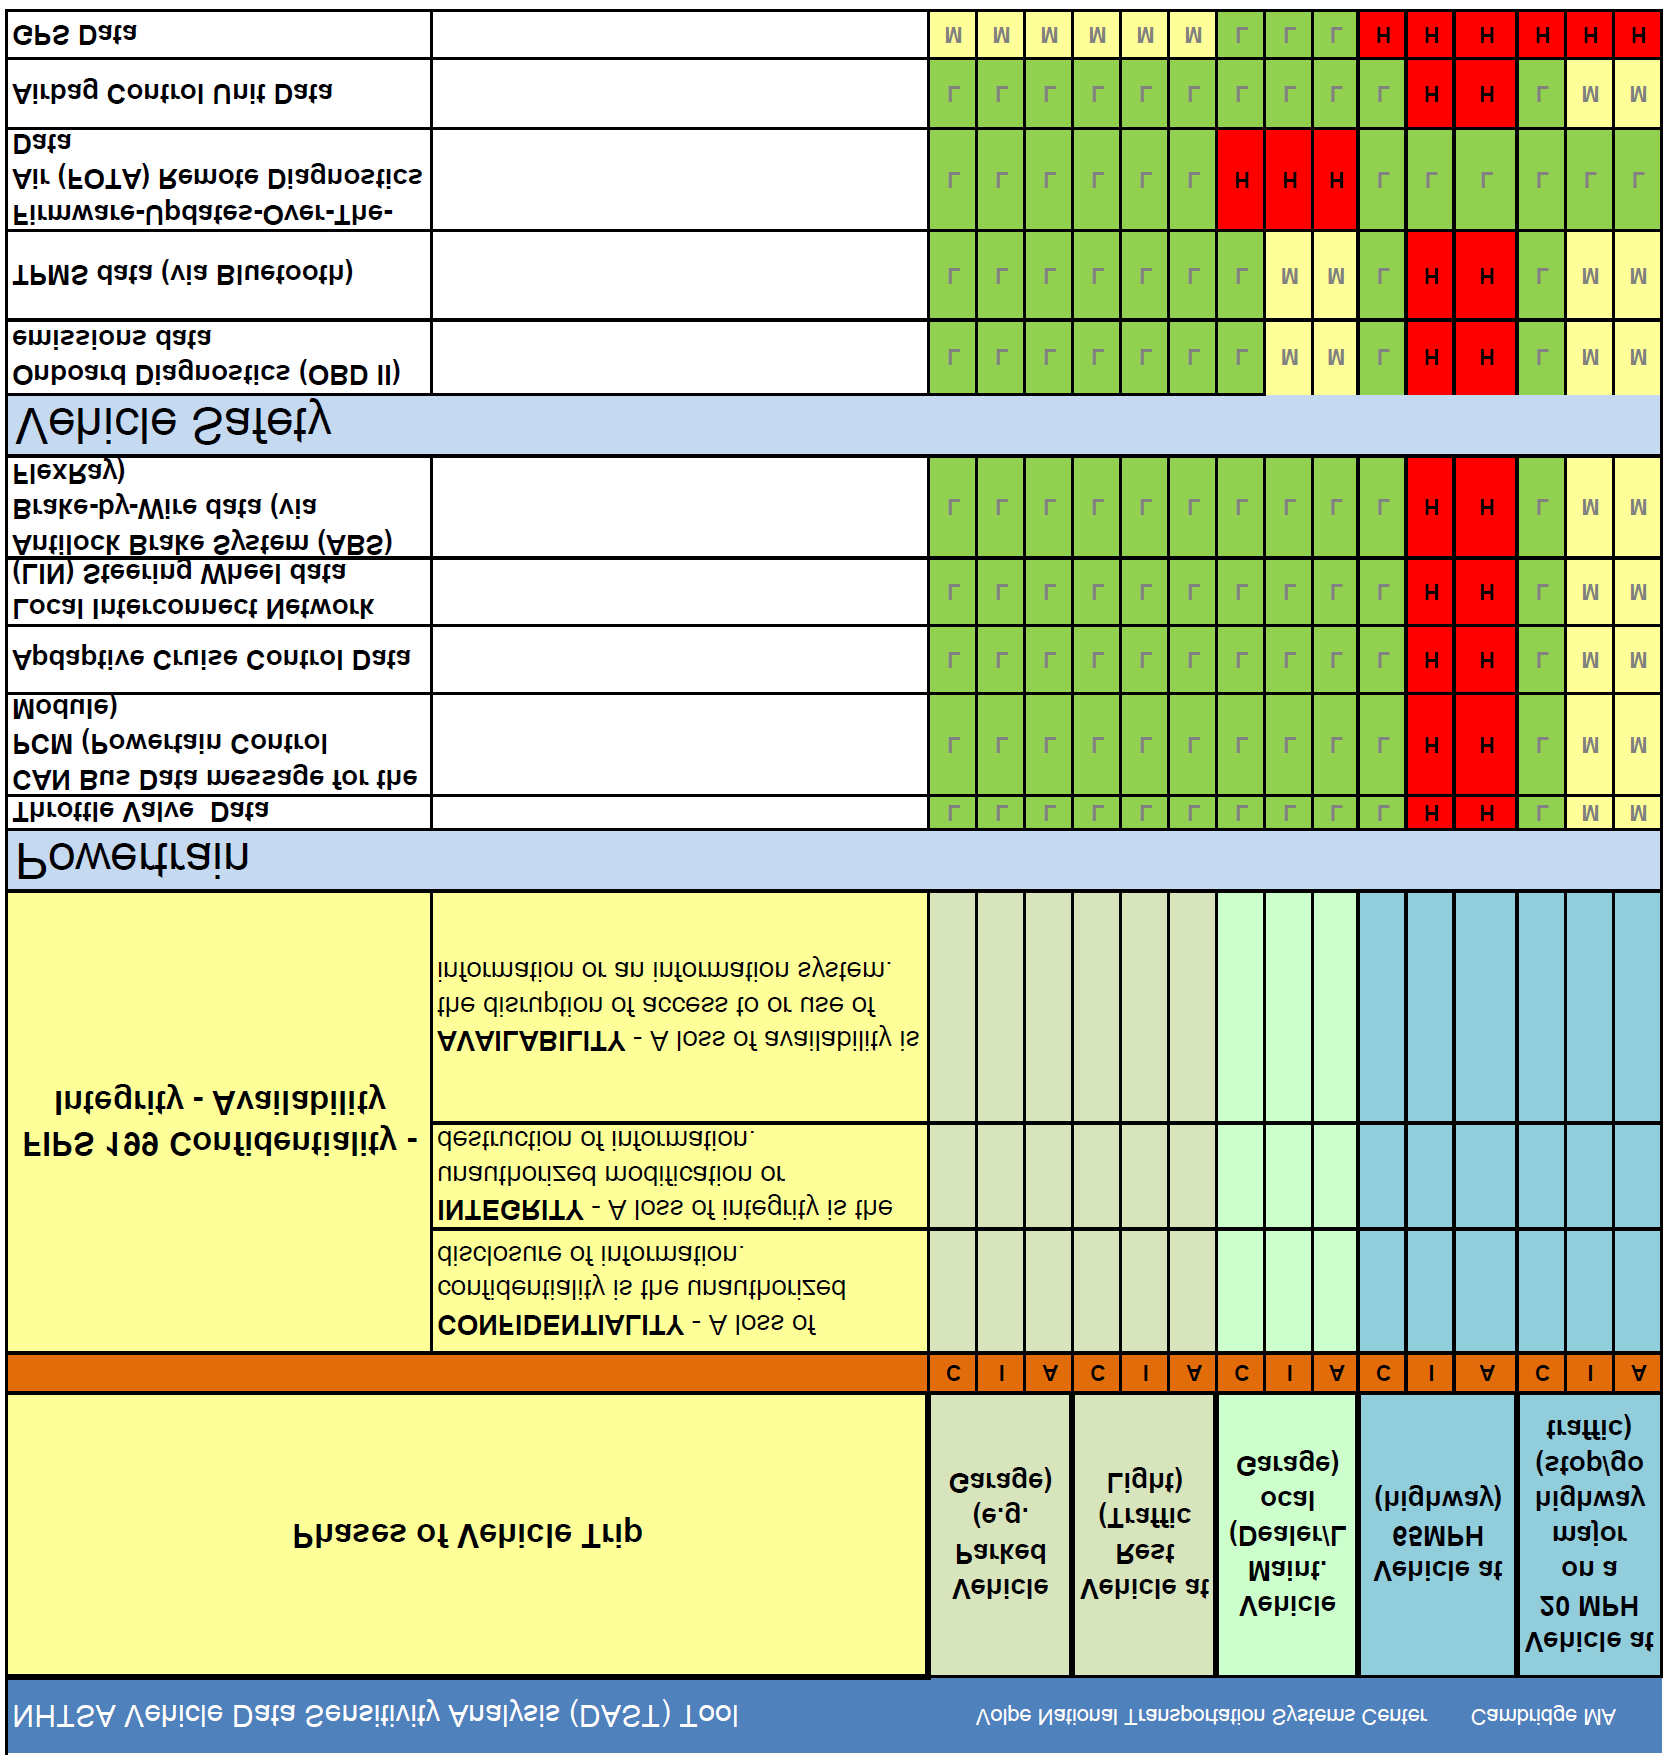 information security standards template - dot hs 812 september national institute of standards and